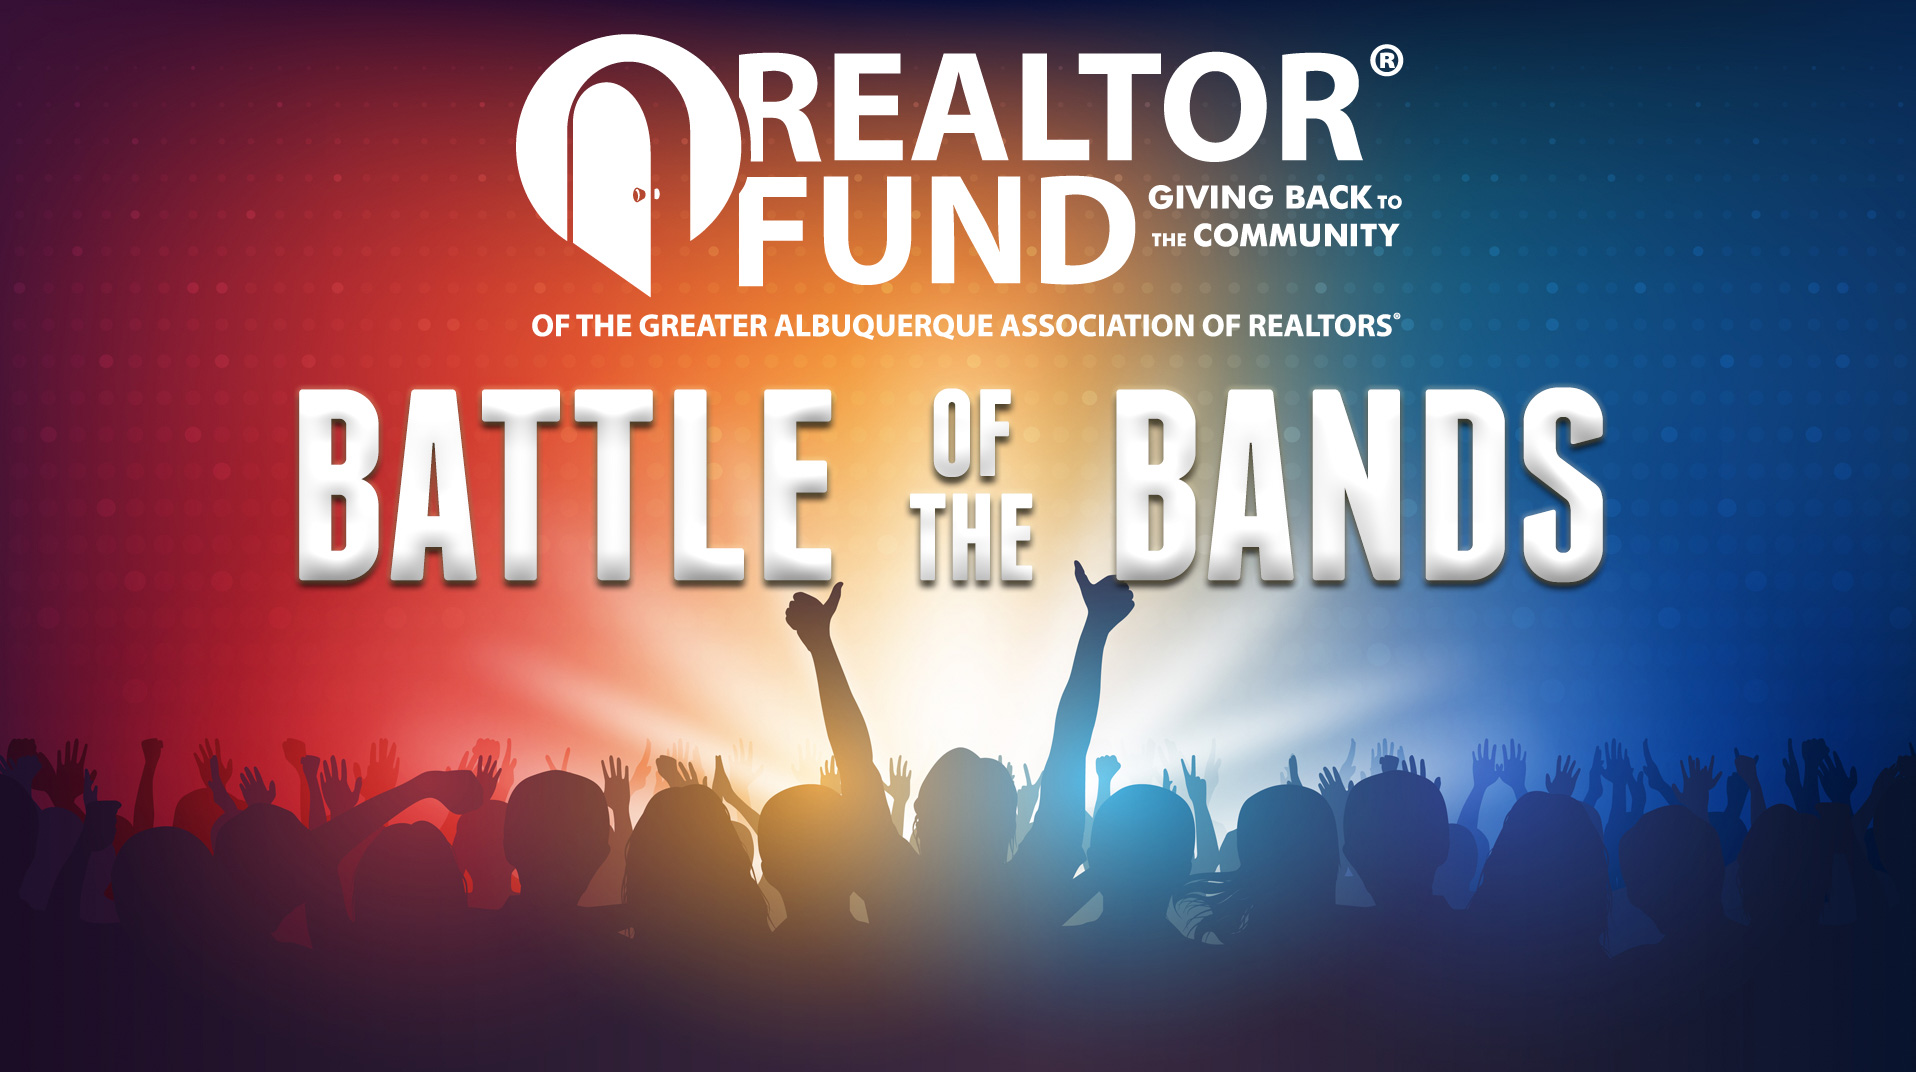 LIVE STREAM: Battle of the Bands on Friday, November 20th